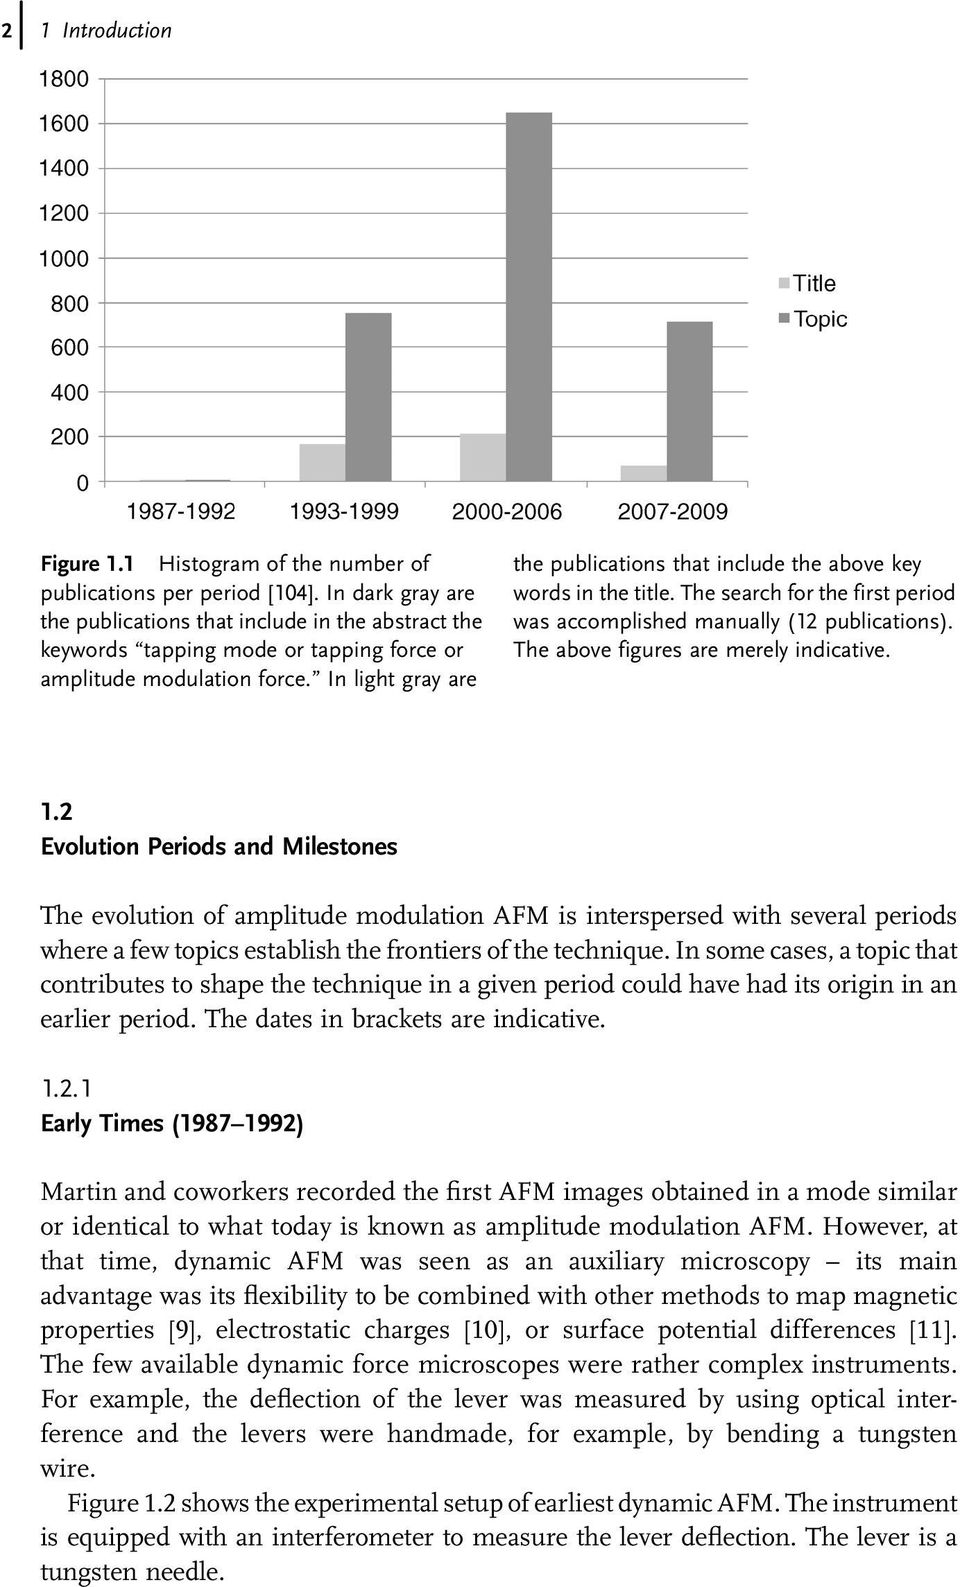 In light gray are the publications that include the above key words in the title. The search for the first period was accomplished manually (12 publications). The above figures are merely indicative.